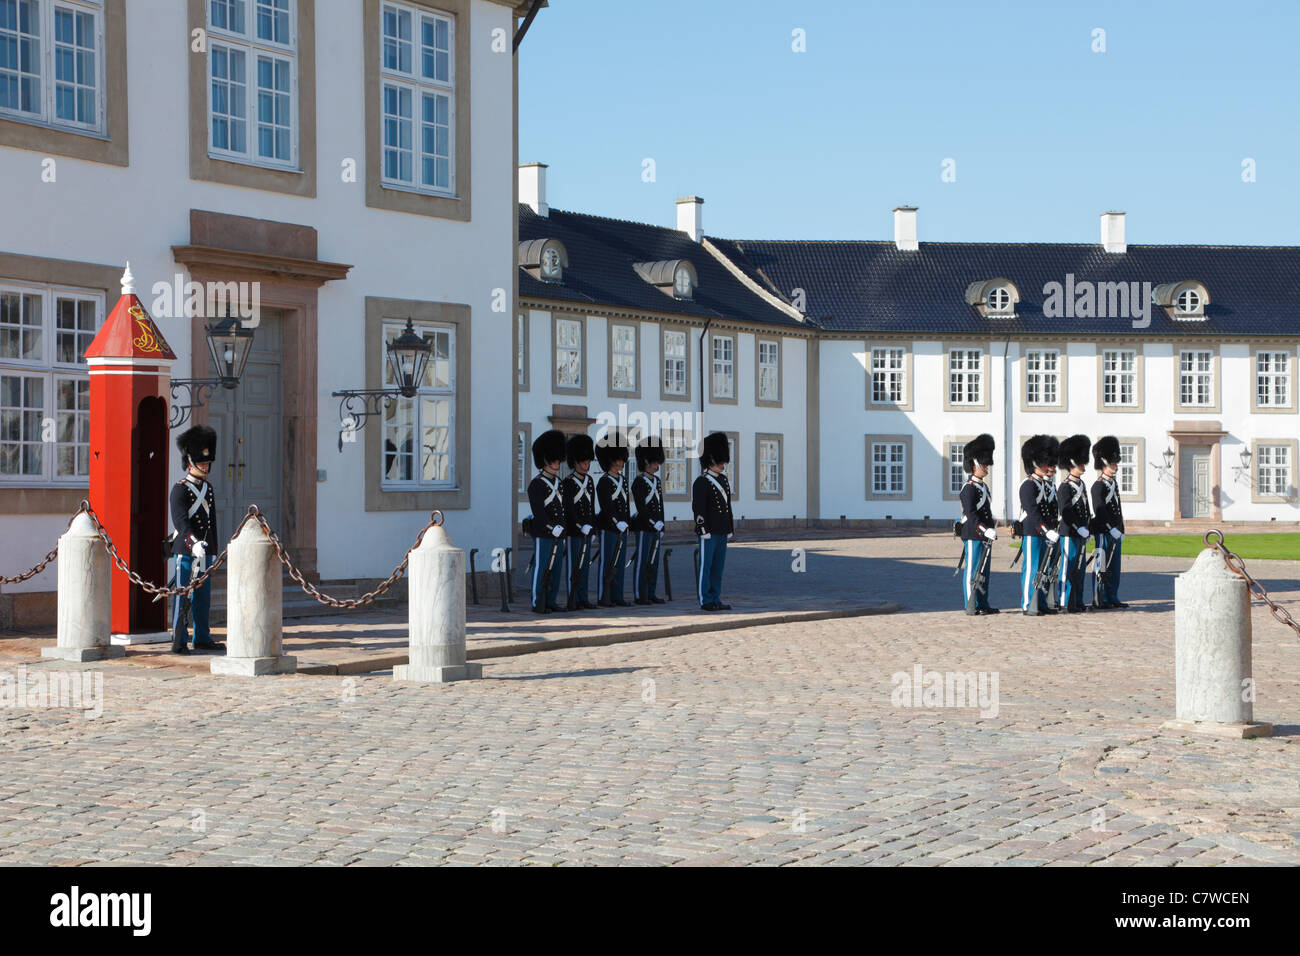 Change of guard by the Royal Danish Life Guards at the Fredensborg Palace near Copenhagen, Denmark - Stock Image